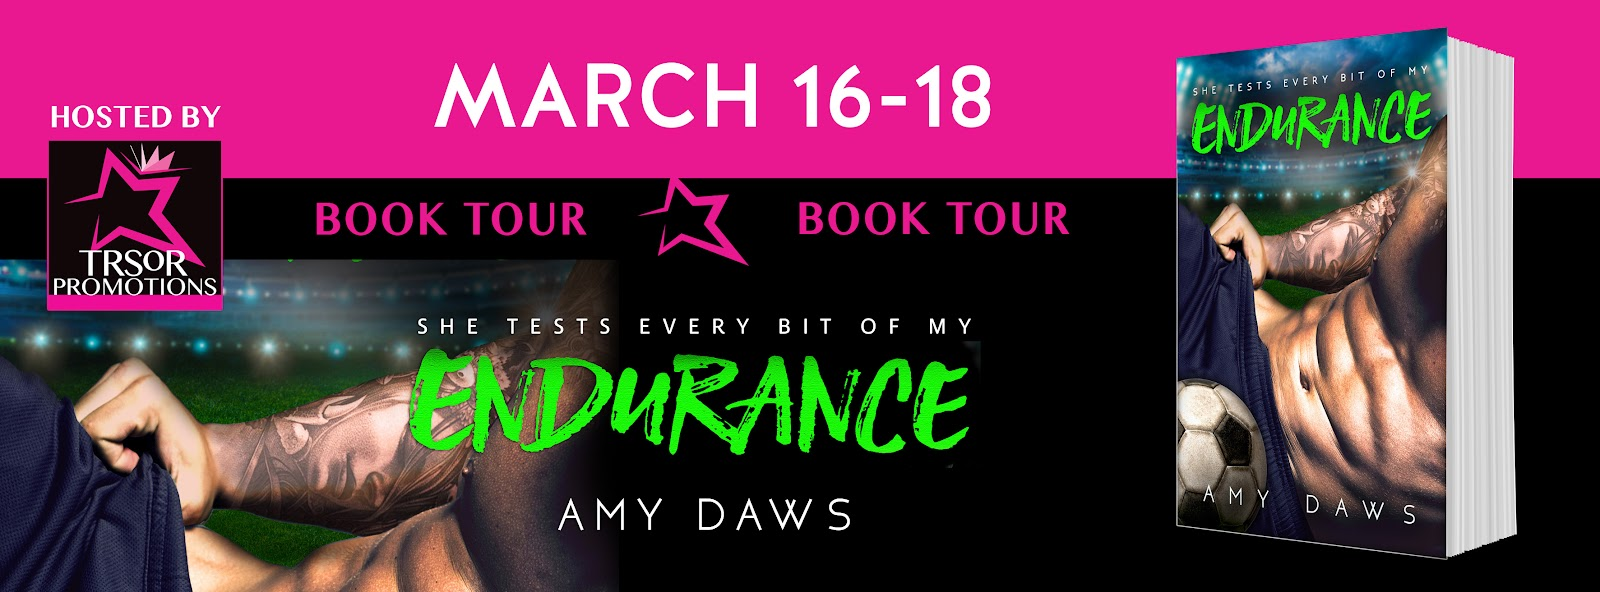 ENDURANCE_BOOK_TOUR.jpg